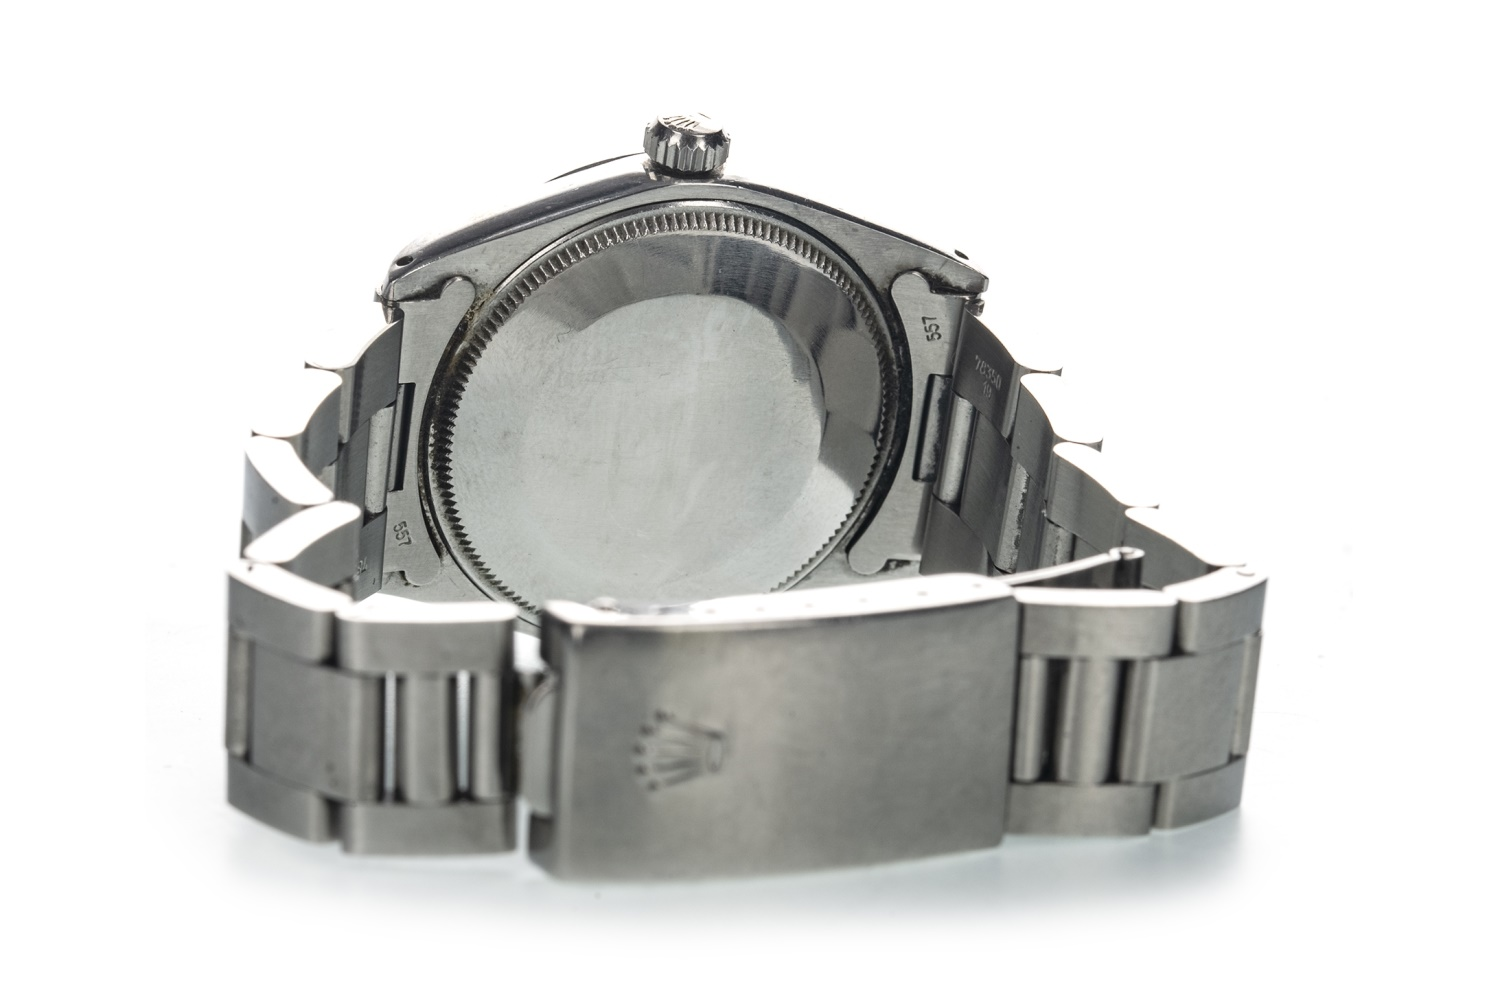 Lot 857 - A GENTLEMAN'S ROLEX AIR KING STAINLESS STEEL AUTOMATIC WRIST WATCH